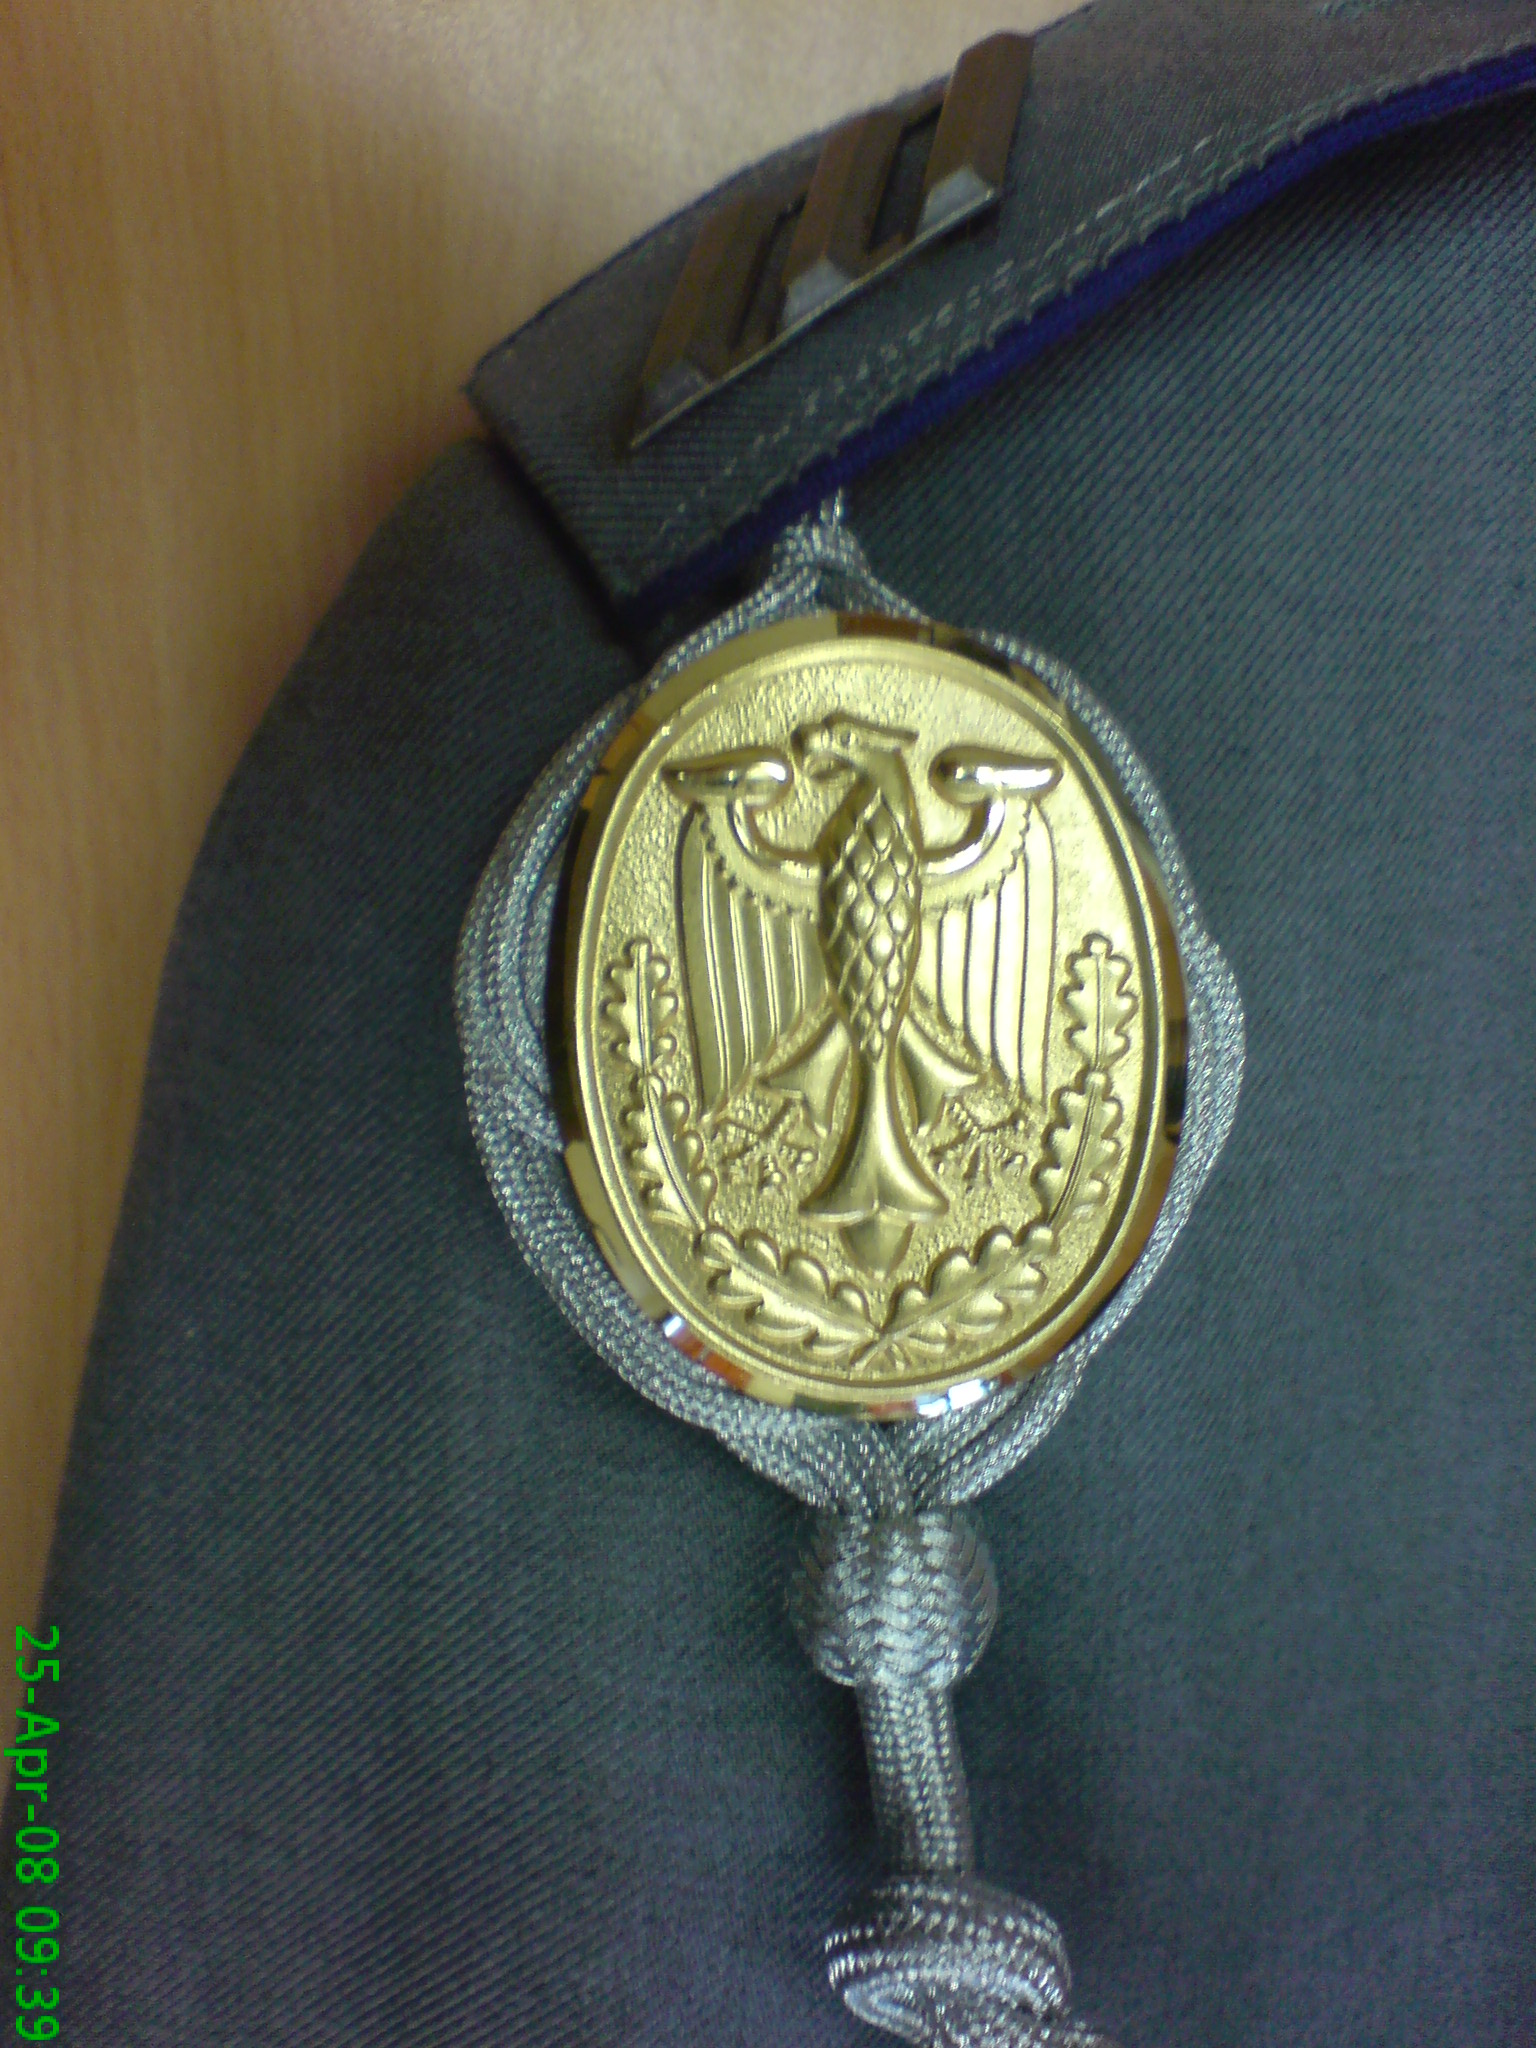 German Proficiency Marksmanship Schutzenschnur Badge